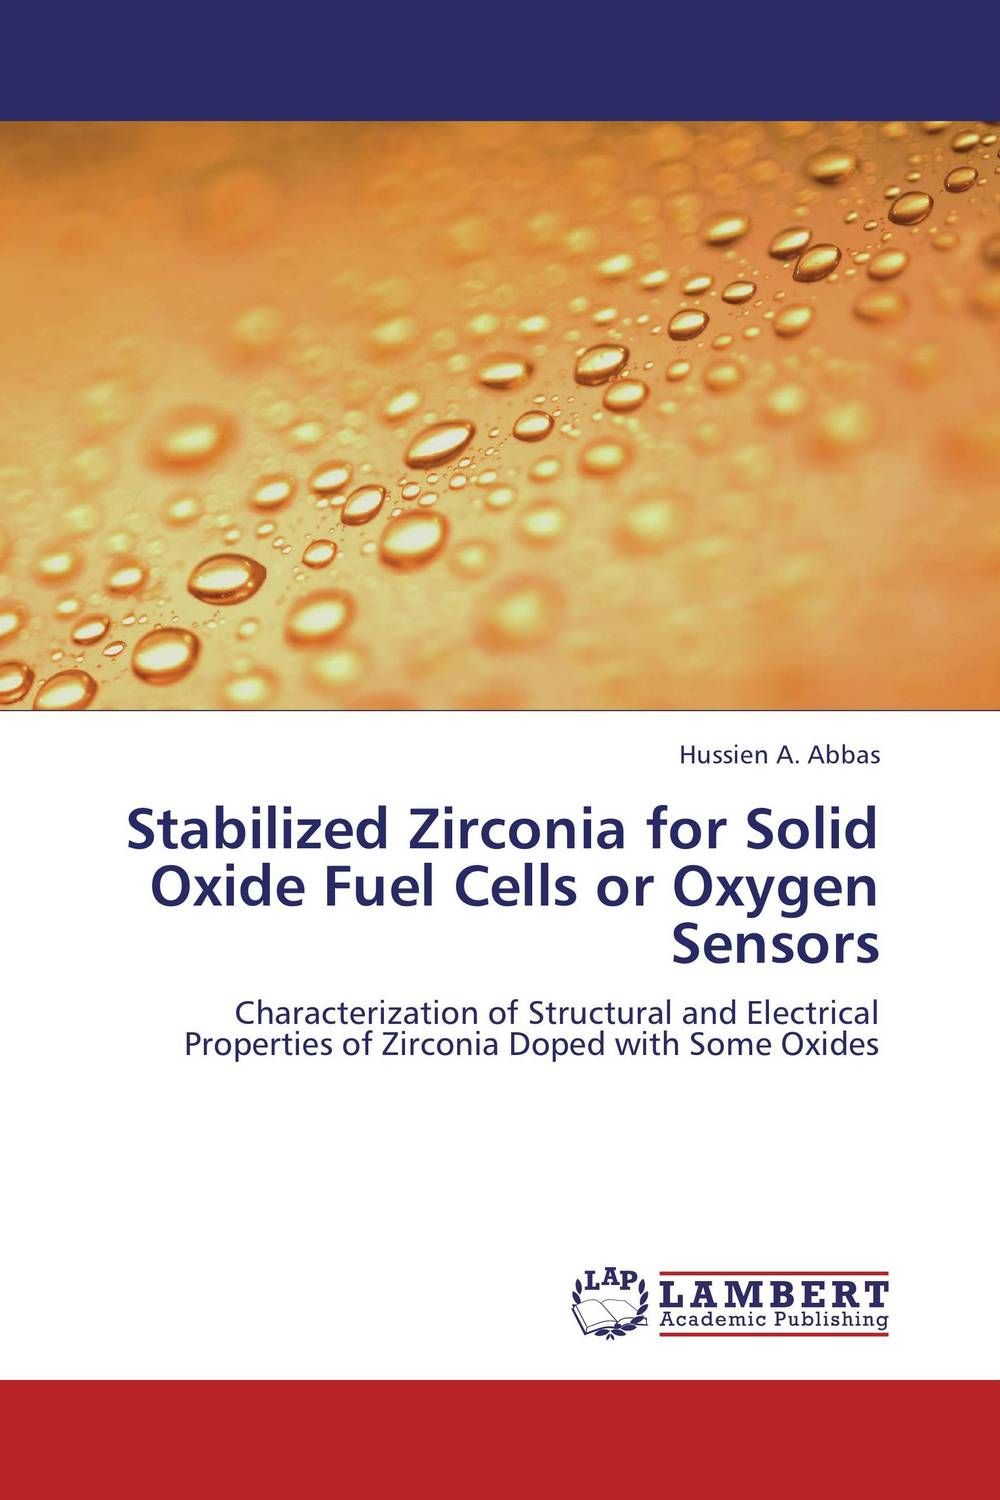 Stabilized Zirconia for Solid Oxide Fuel Cells or Oxygen Sensors lifetimes of excitons in cuprous oxide